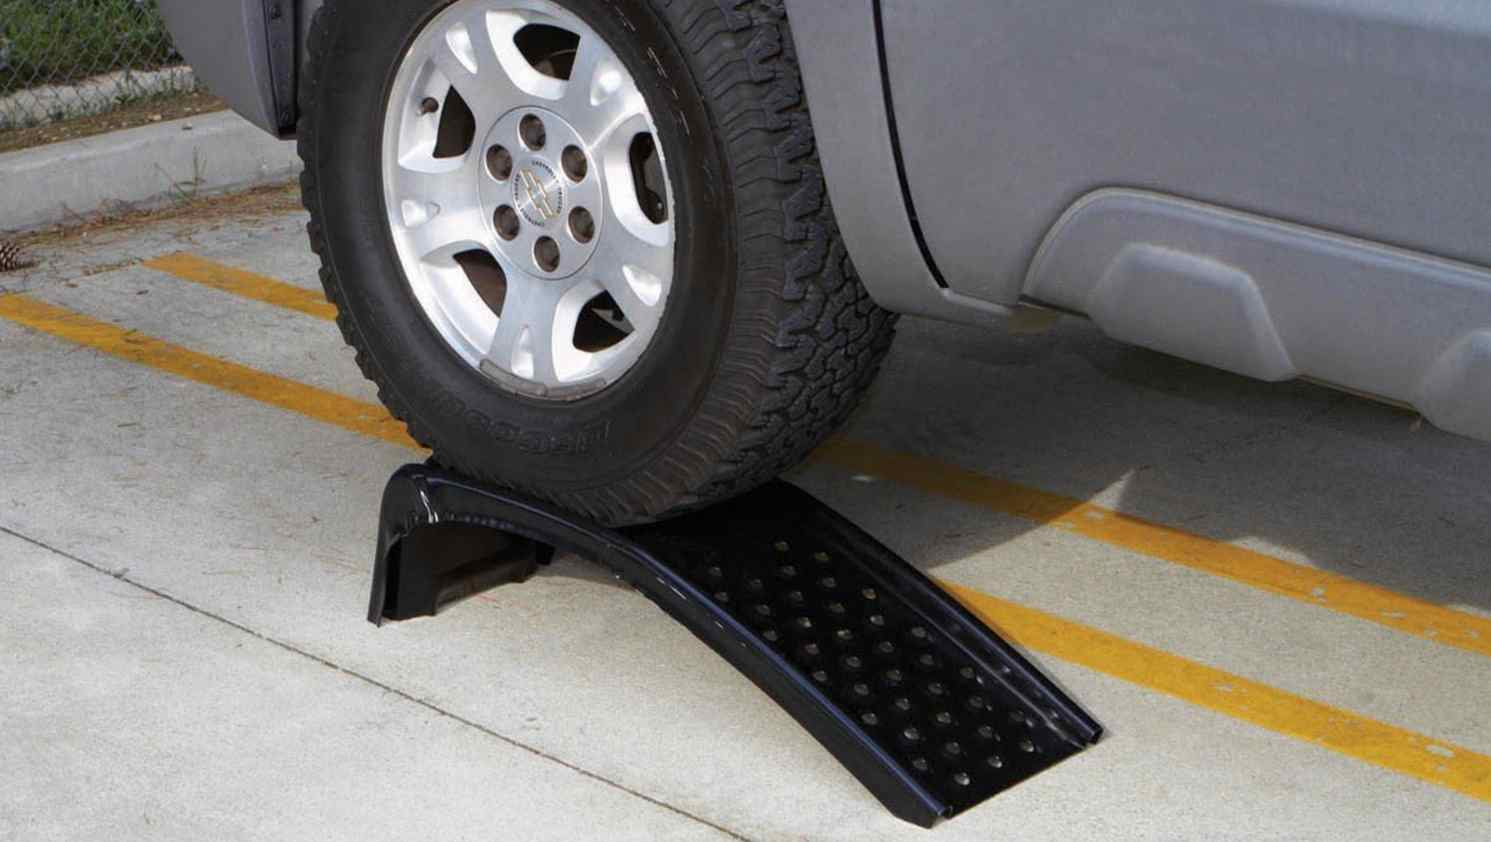 5 Best Car Ramps for Oil Changes